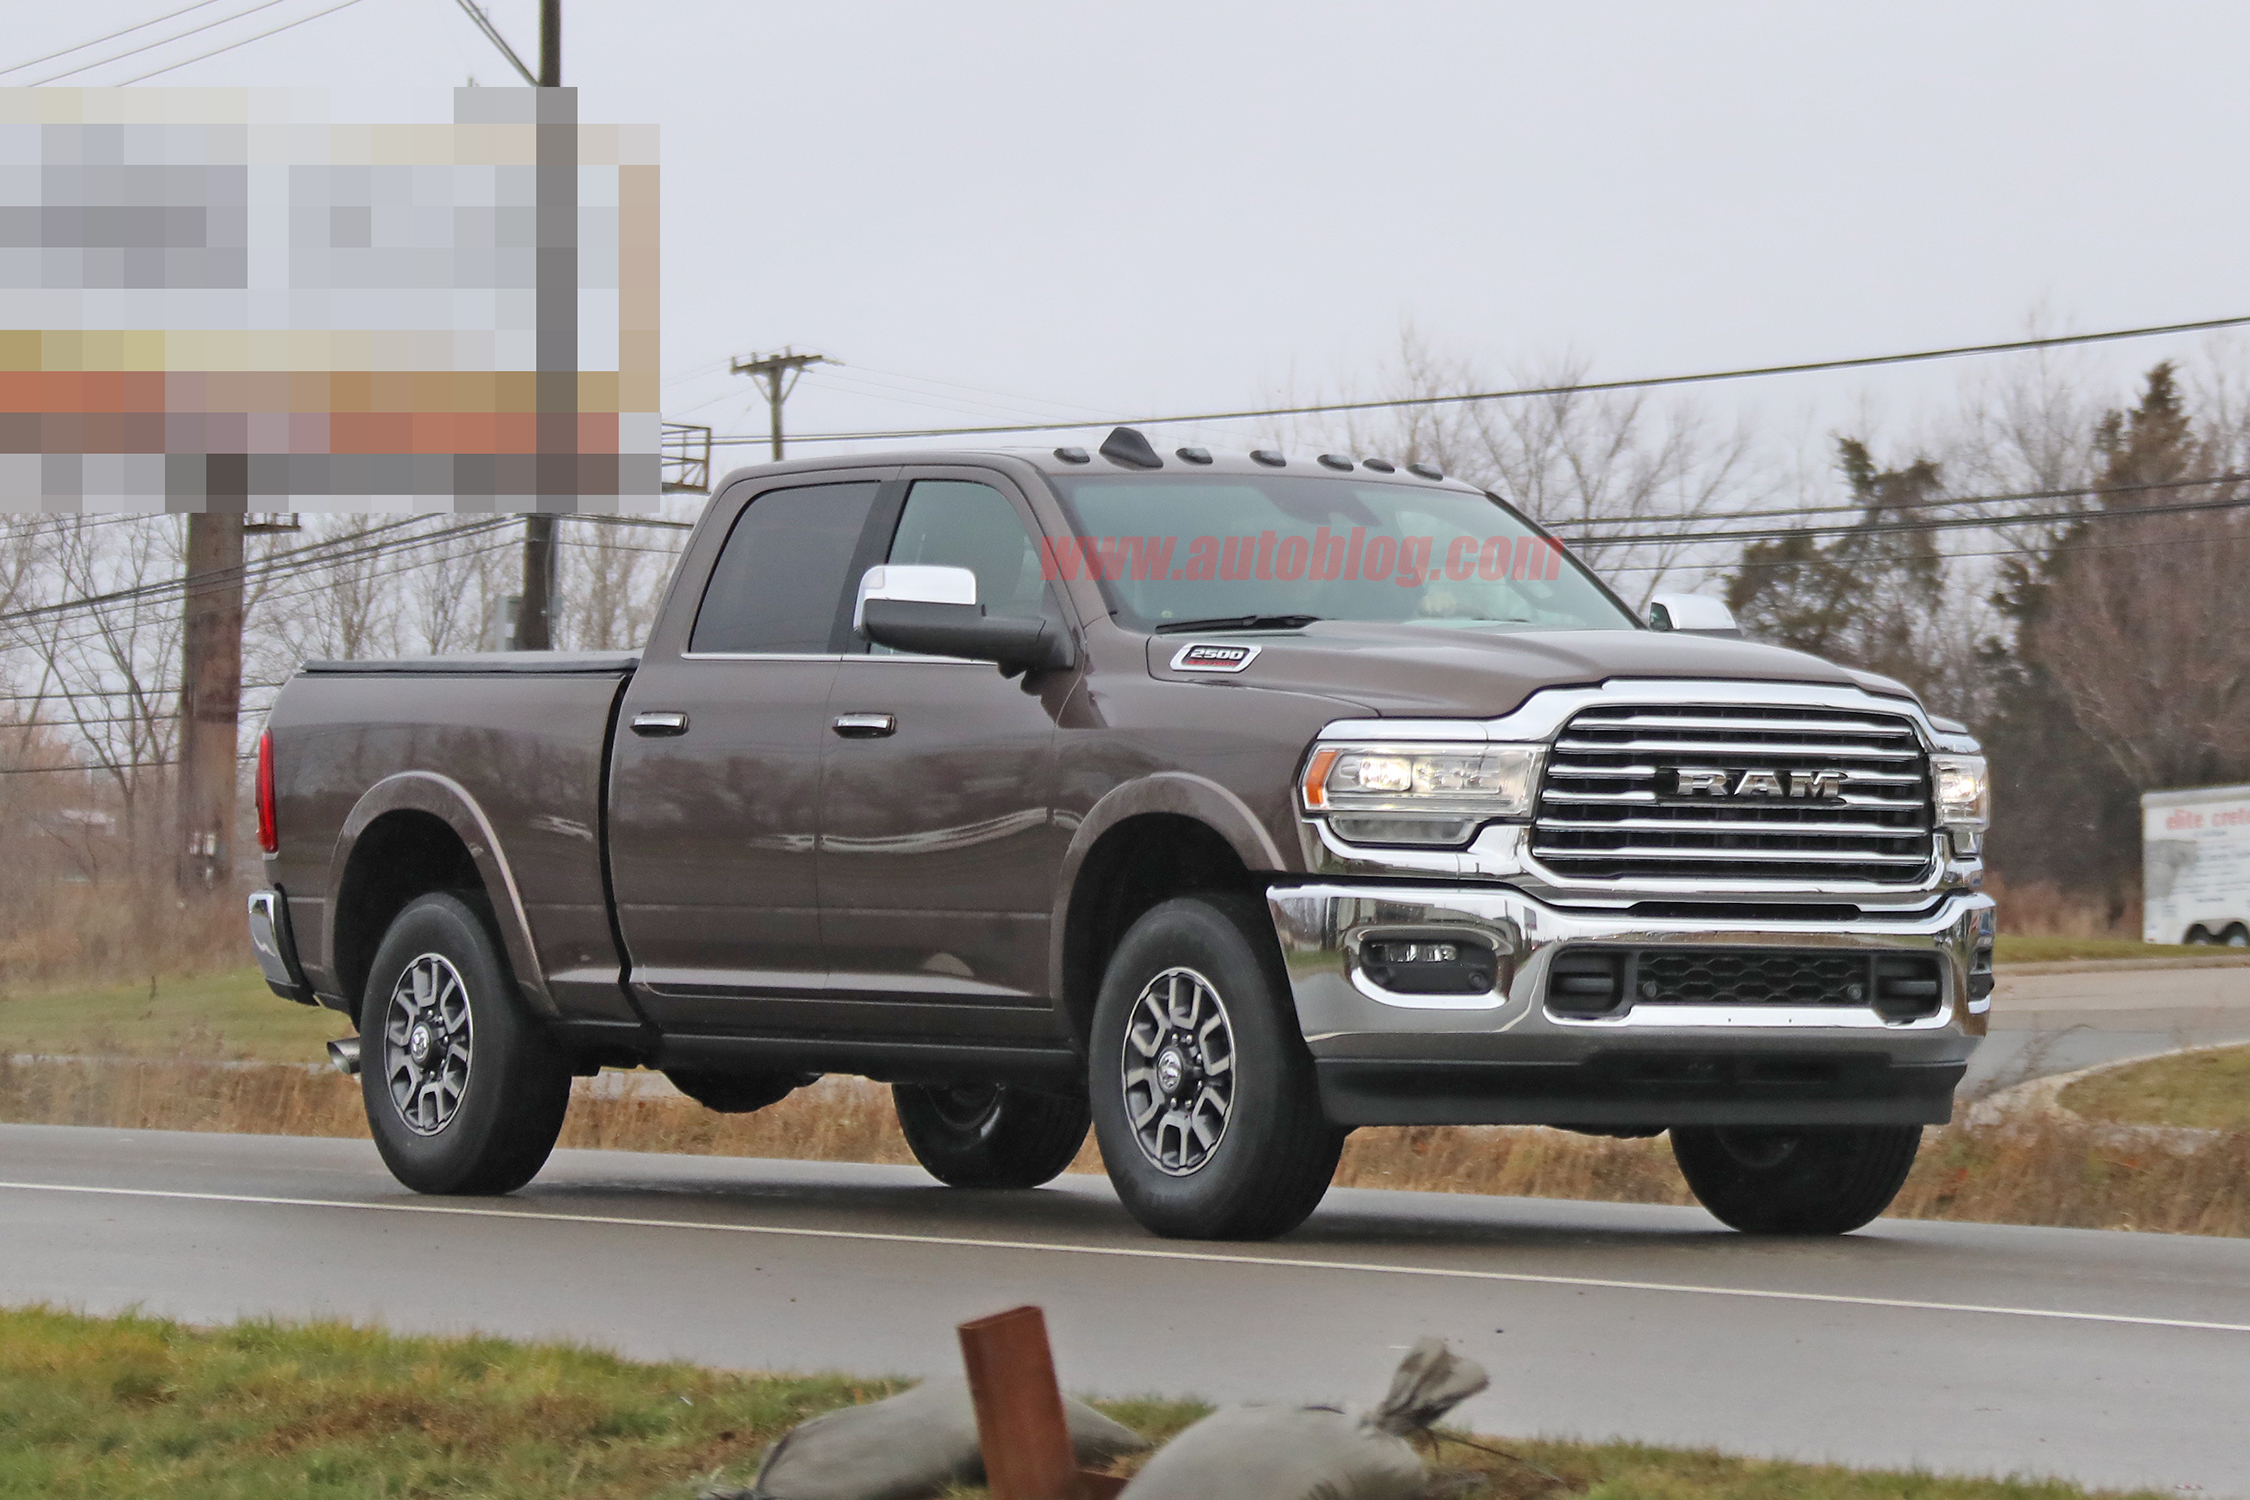 2020 Ram Hd Trucks Revealed In Spy Photos Totally